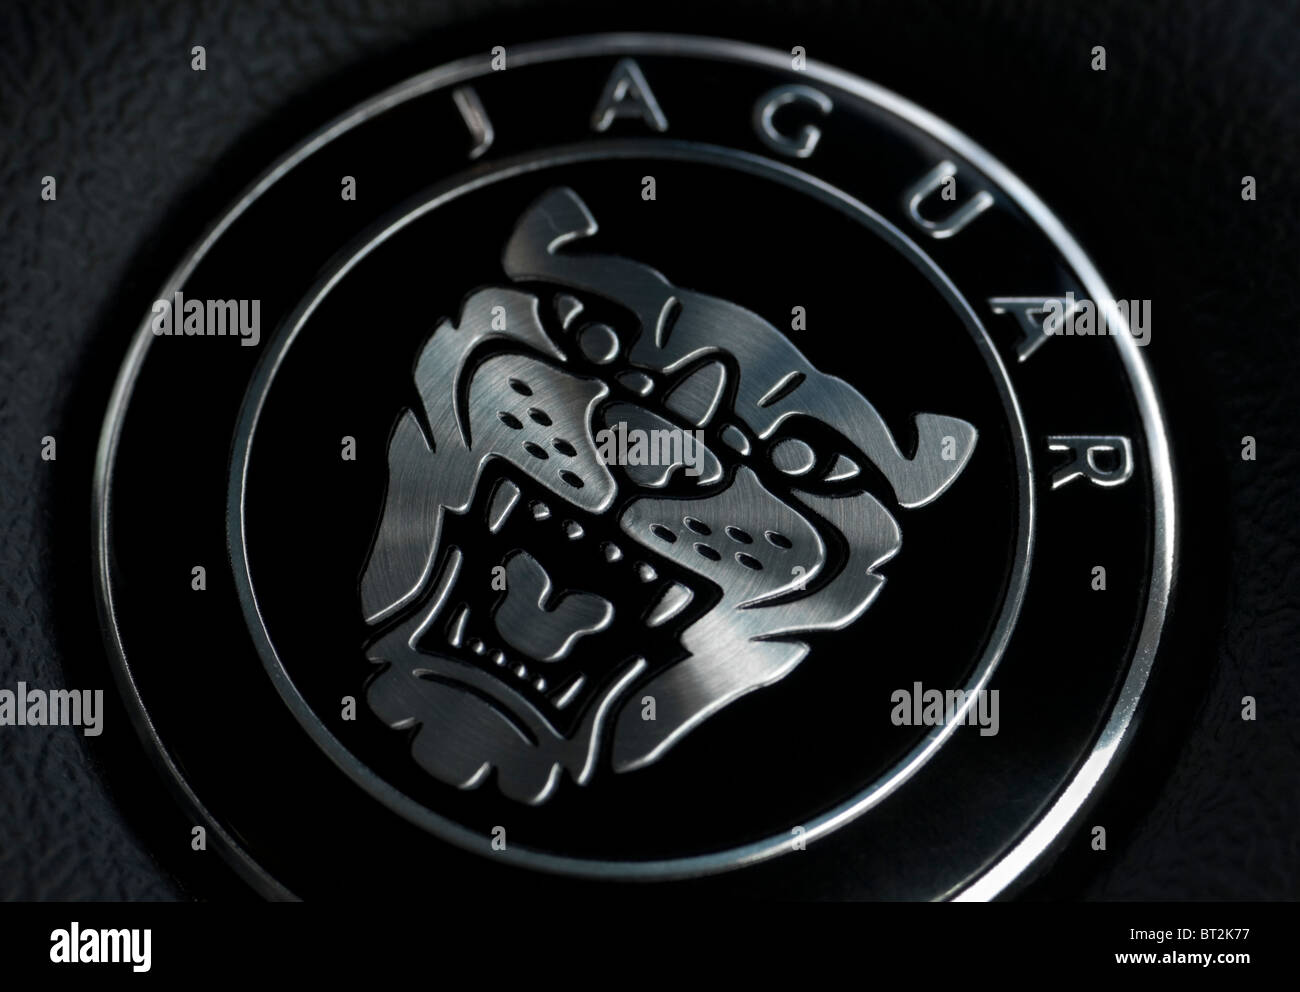 Macro Photo Of The Famous Jaguar Badge On The Steering